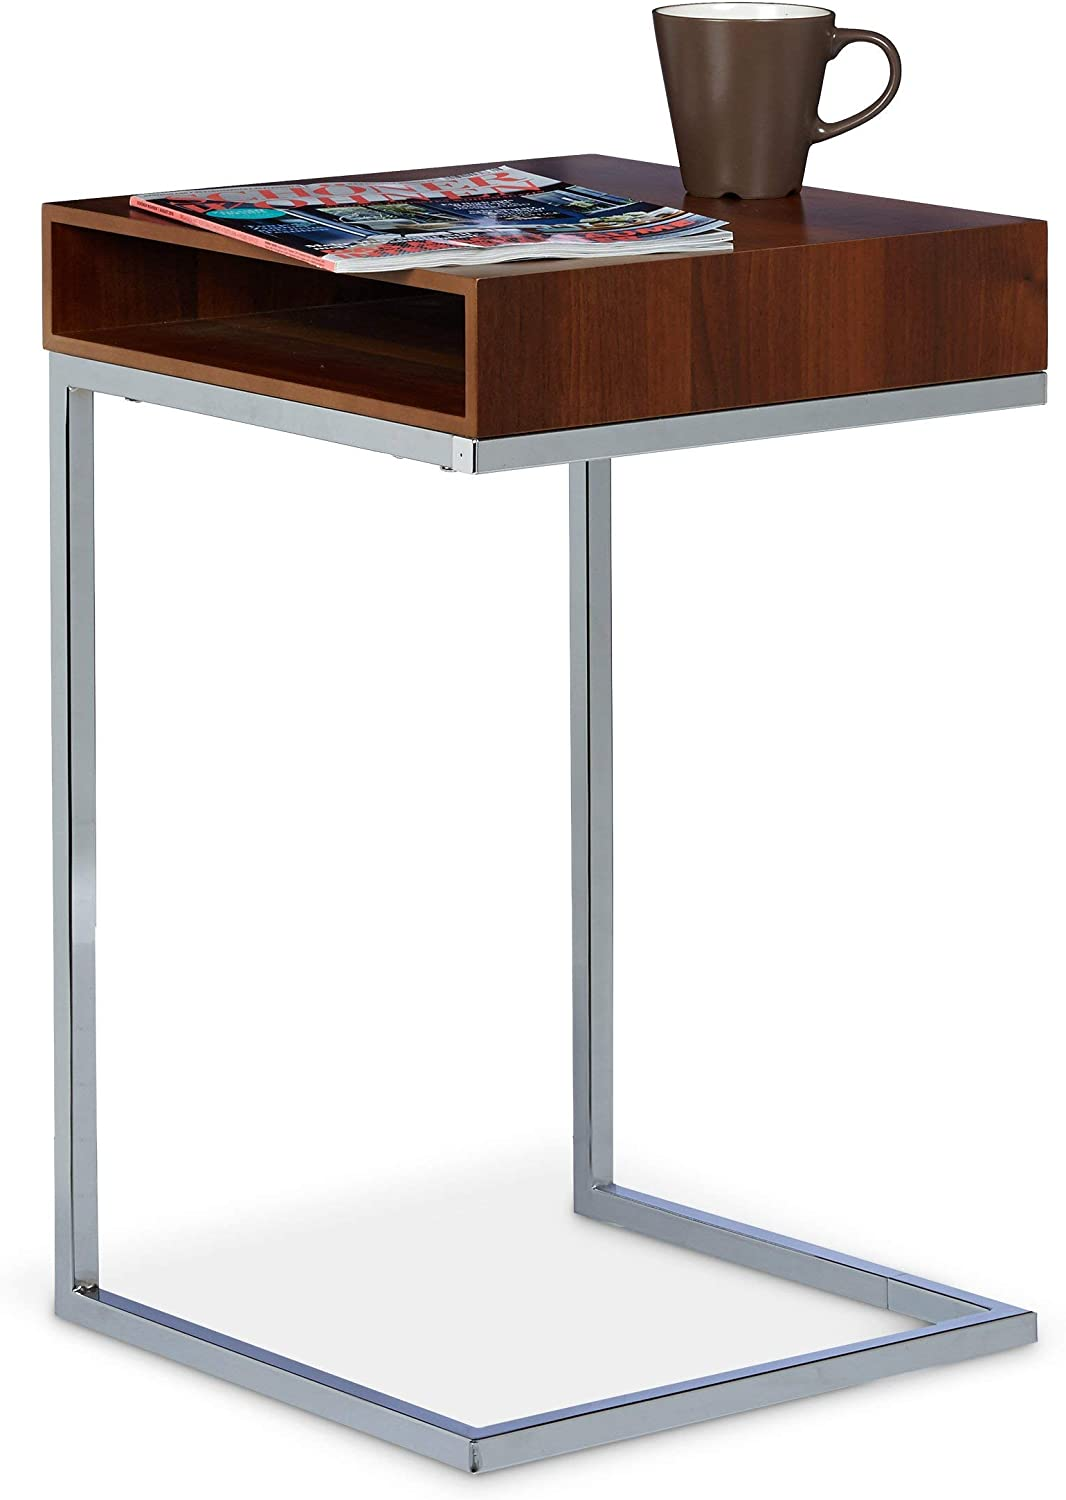 Relaxdays Mesa Auxiliar con Compartimento Lateral, Metal, Natural, 38x37x61 cm